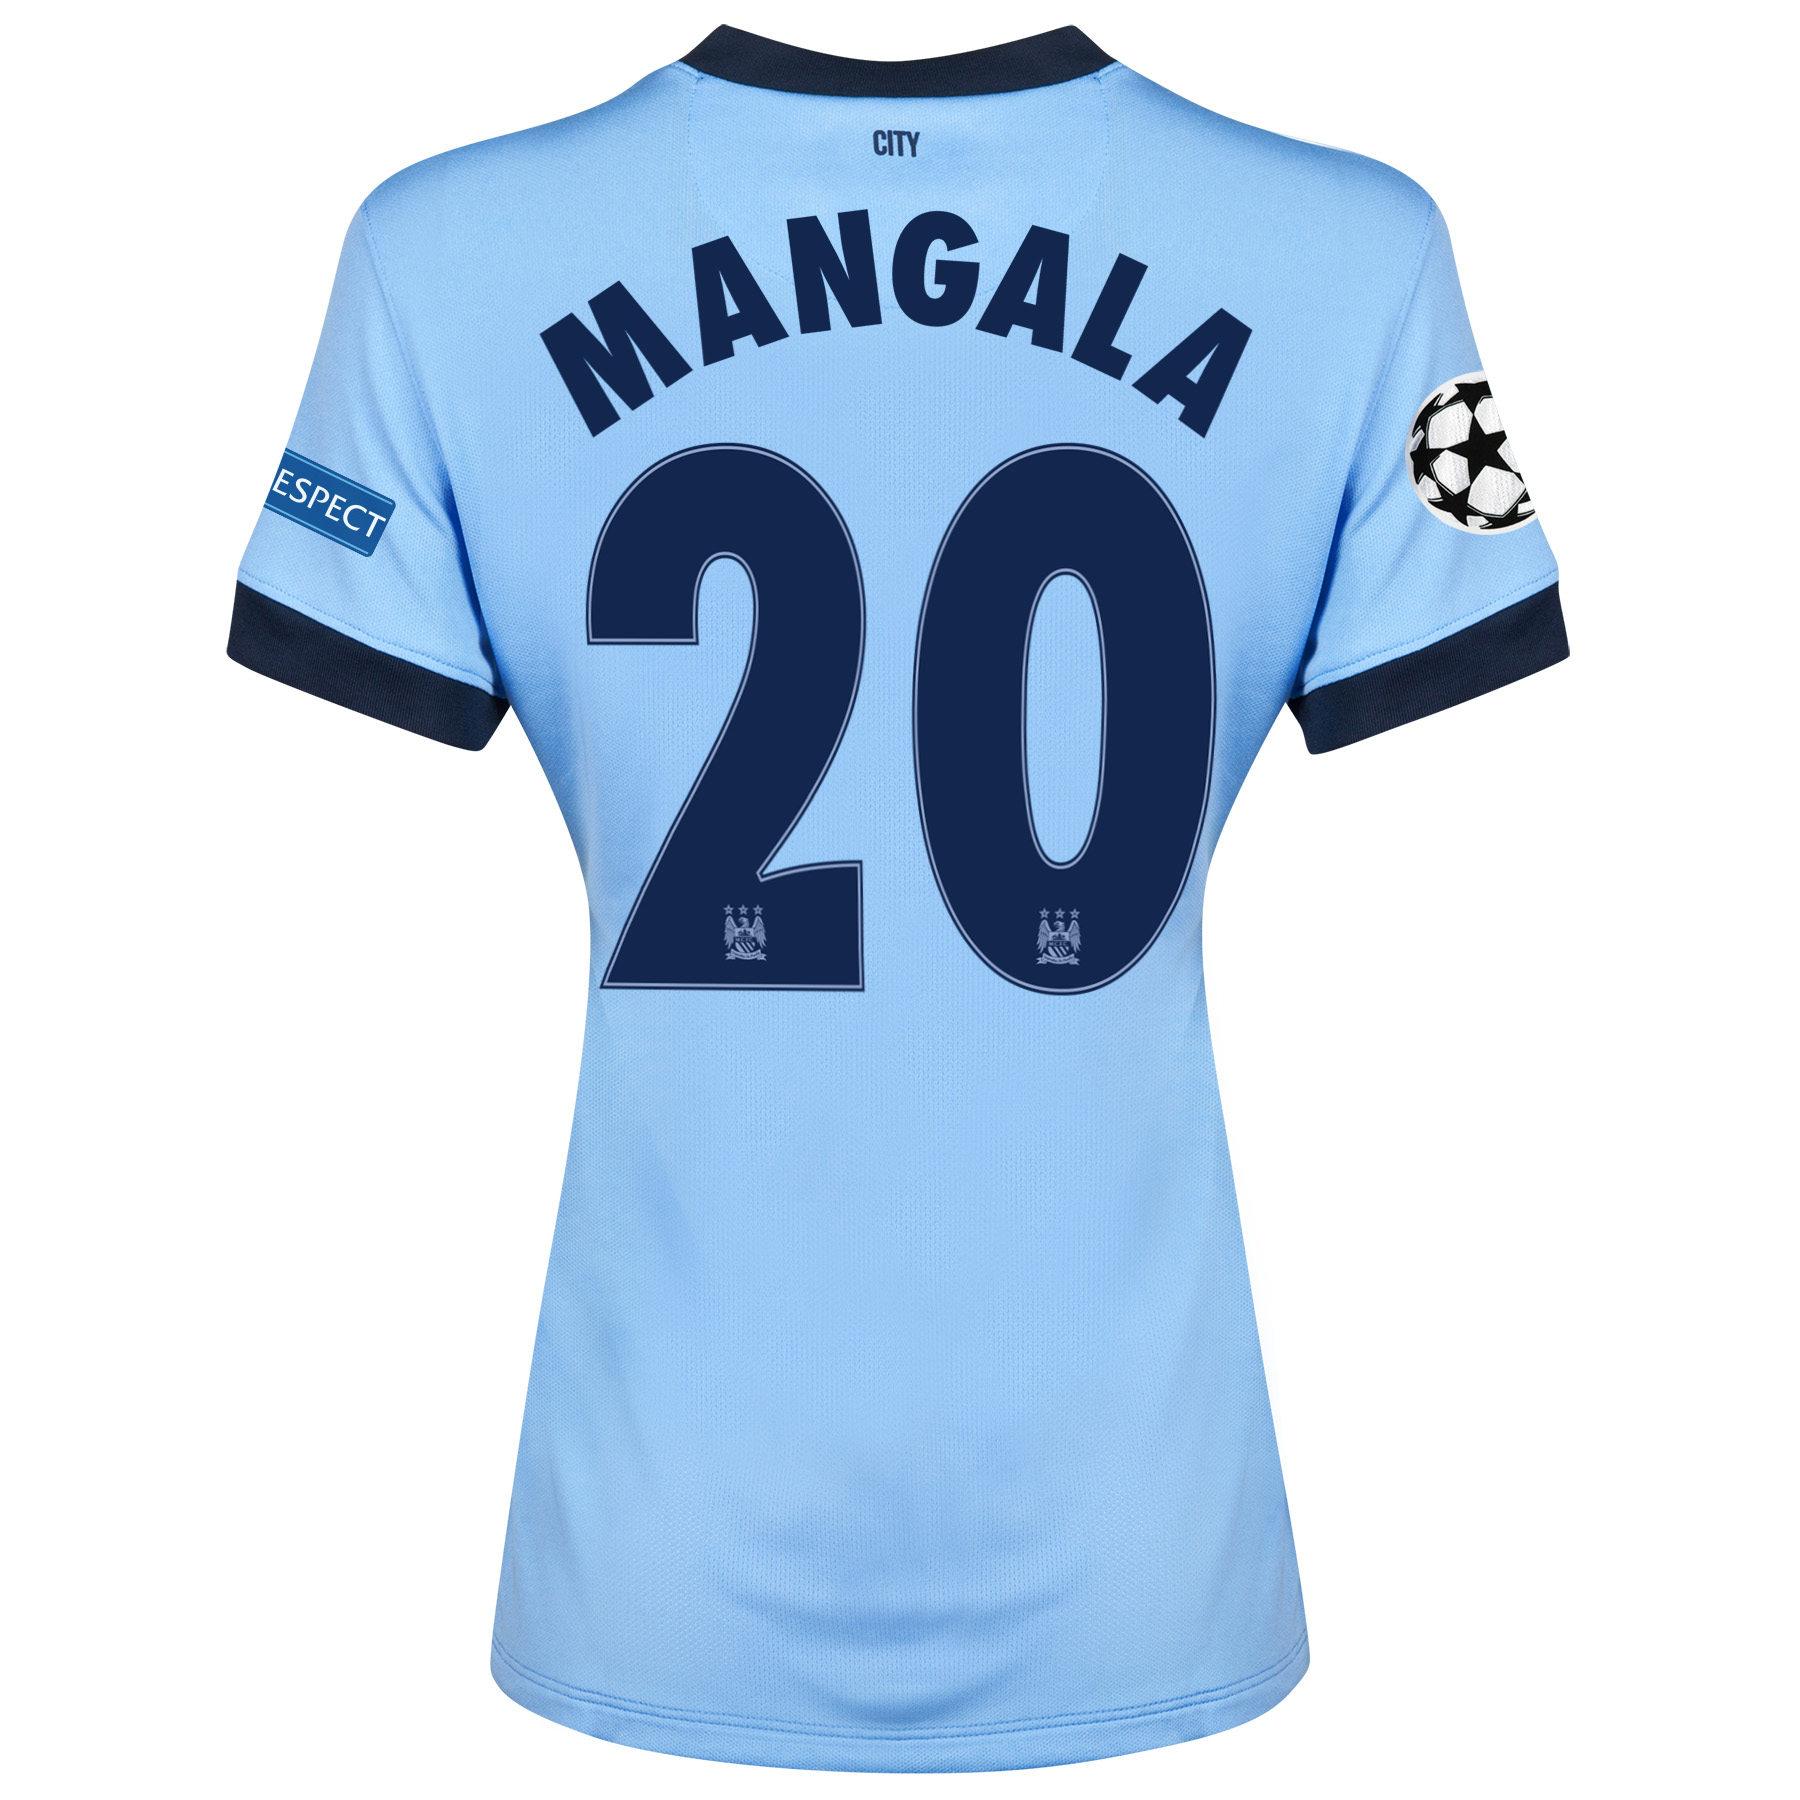 Manchester City UEFA Champions League Home Shirt 2014/15 - Womens Sky Blue with Mangala 20 printing